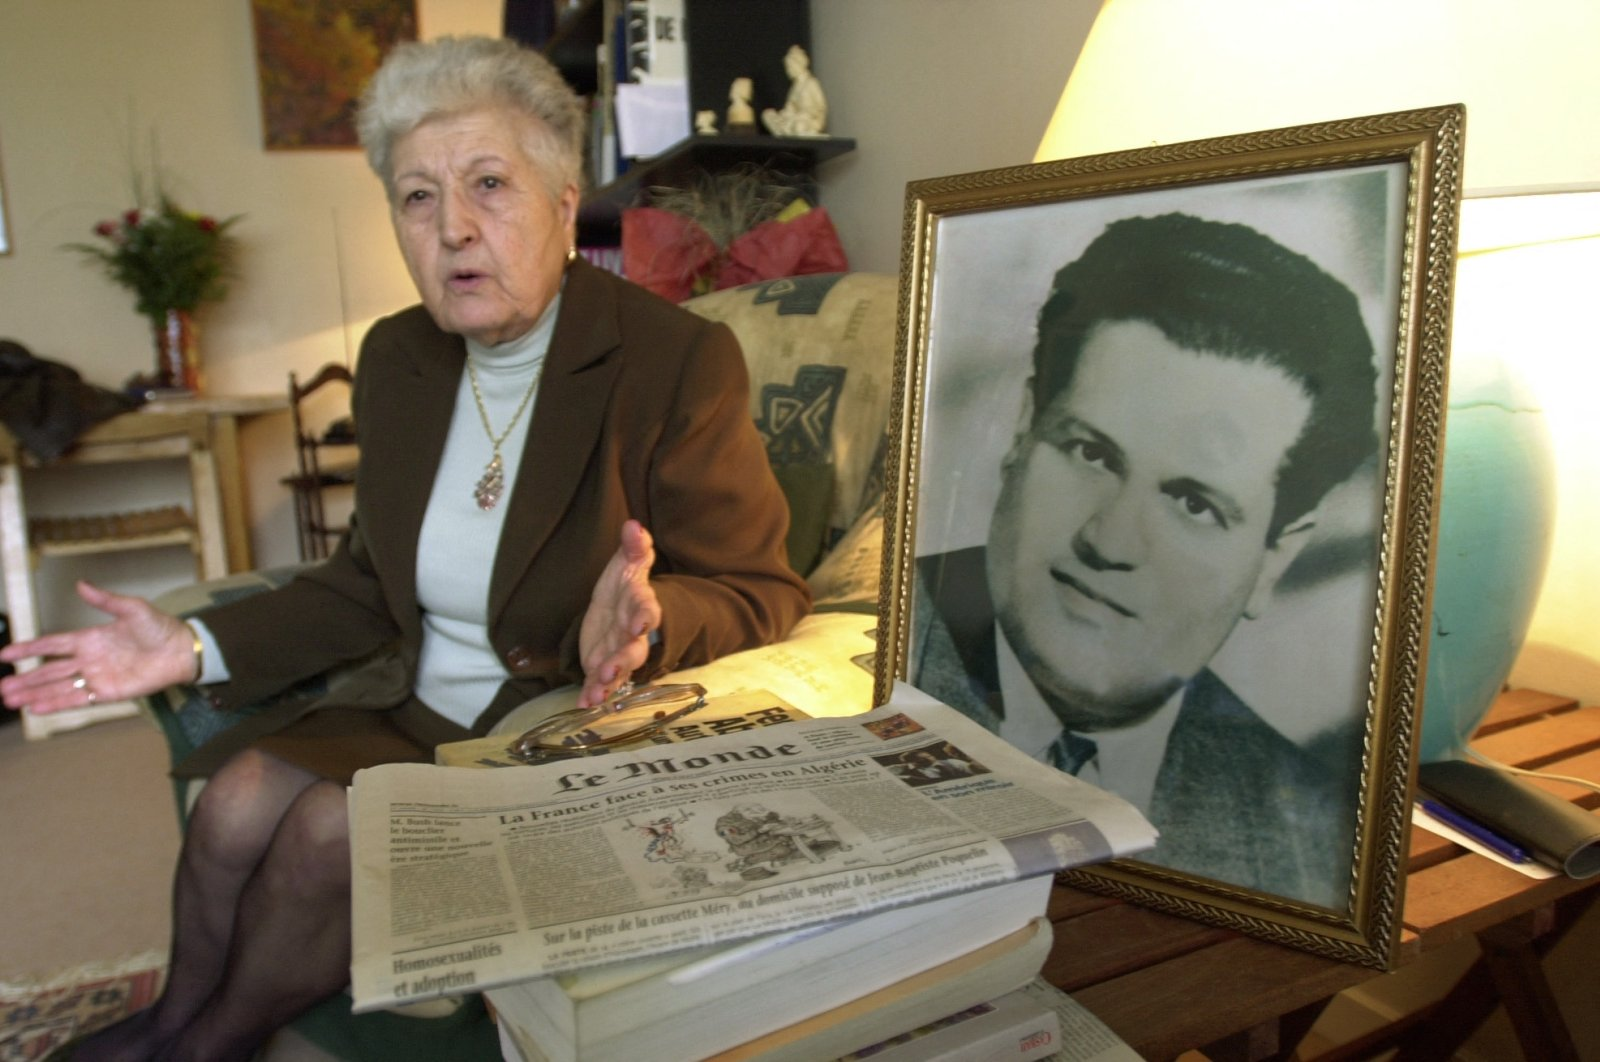 Malika Boumendjel, the widow of Algerian lawyer Ali Boumendjel, gives an interview at her home in Puteaux on her husband's death during his 43-day detention by the French army on March 23, 1957, Puteaux, France, May 5, 2001. (AFP Photo)